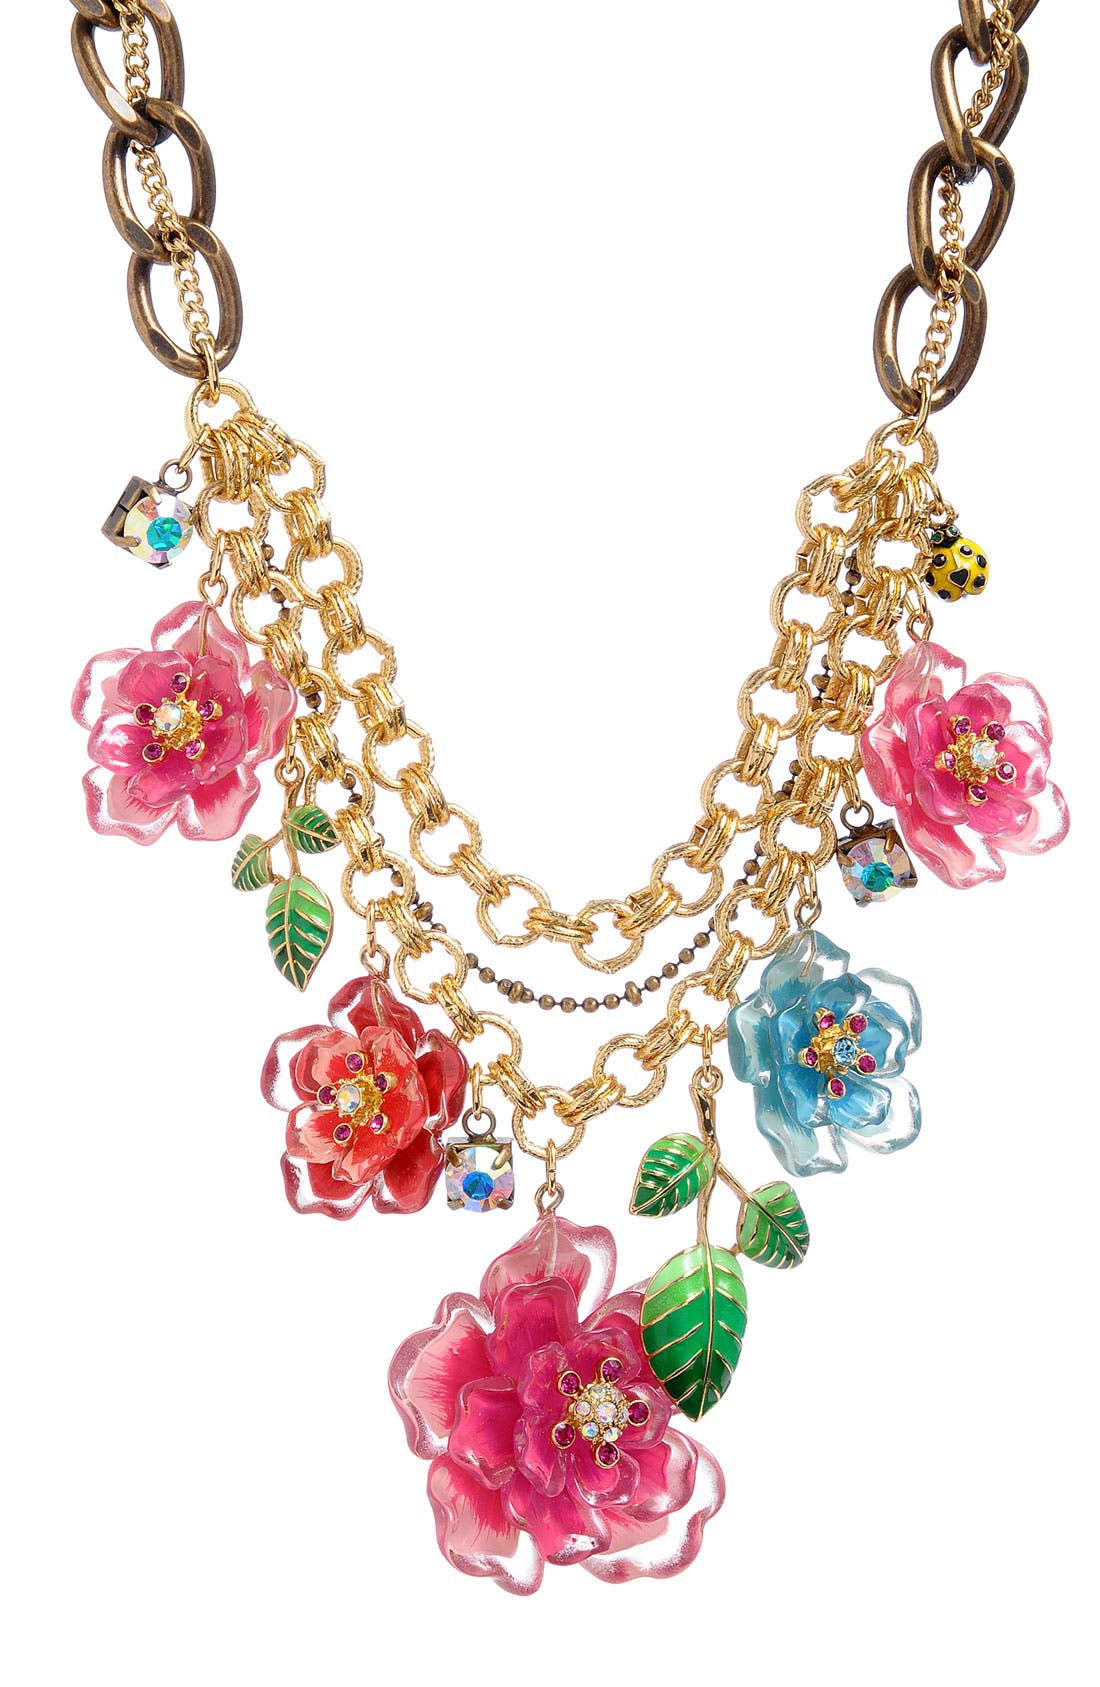 BETSEY JOHNSON 'Hawaiian Luau' Floral Bib Statement Necklace, Main, color, 960